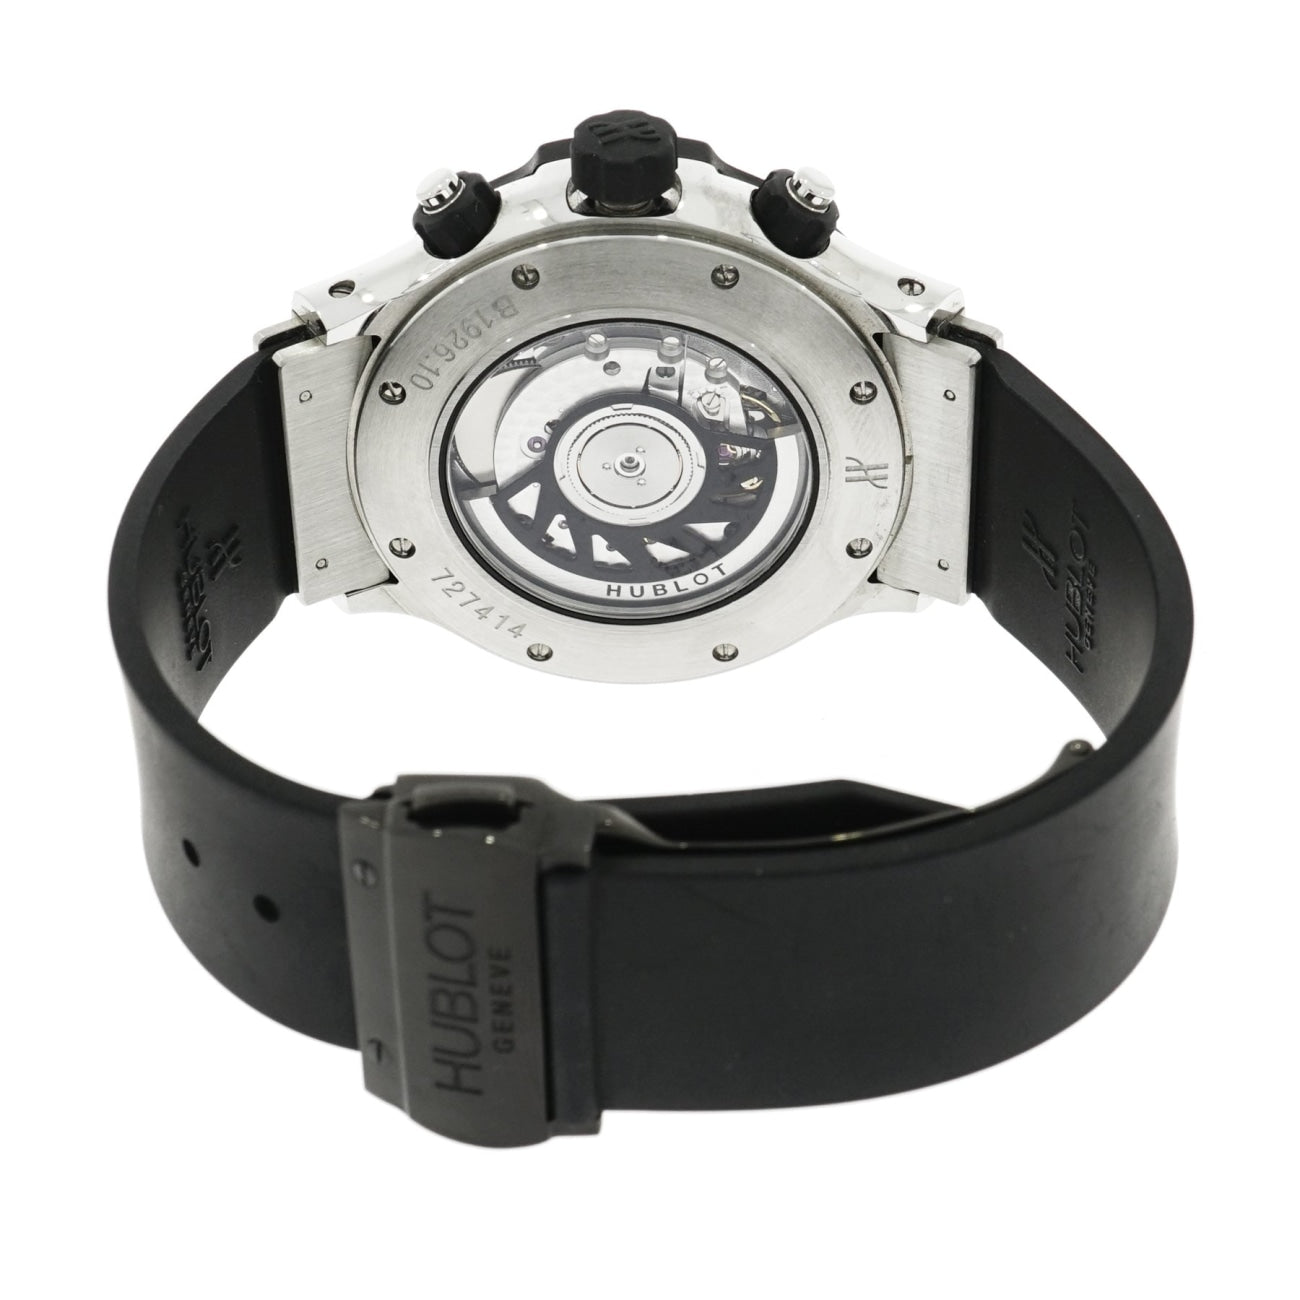 Pre-Owned Hublot Pre-Owned Watches - Super B Black Magic | Manfredi Jewels